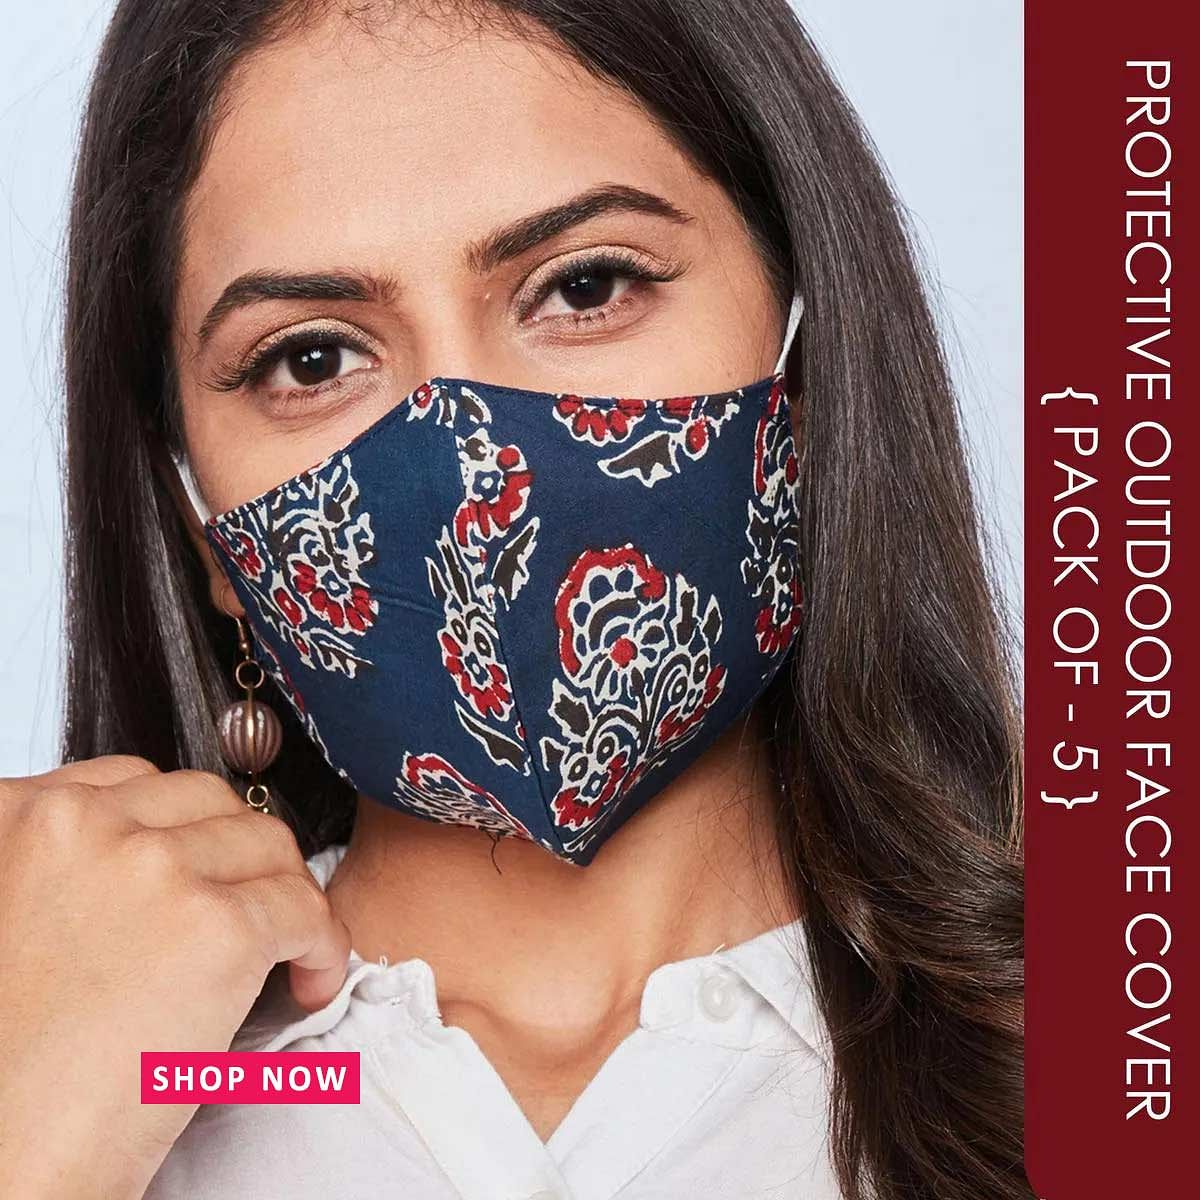 https://peachmode.com/saree-mall-blue-colored-printed-protective-outdoor-reliable-cotton-face-mask-for-adults-pack-of-5-50935/